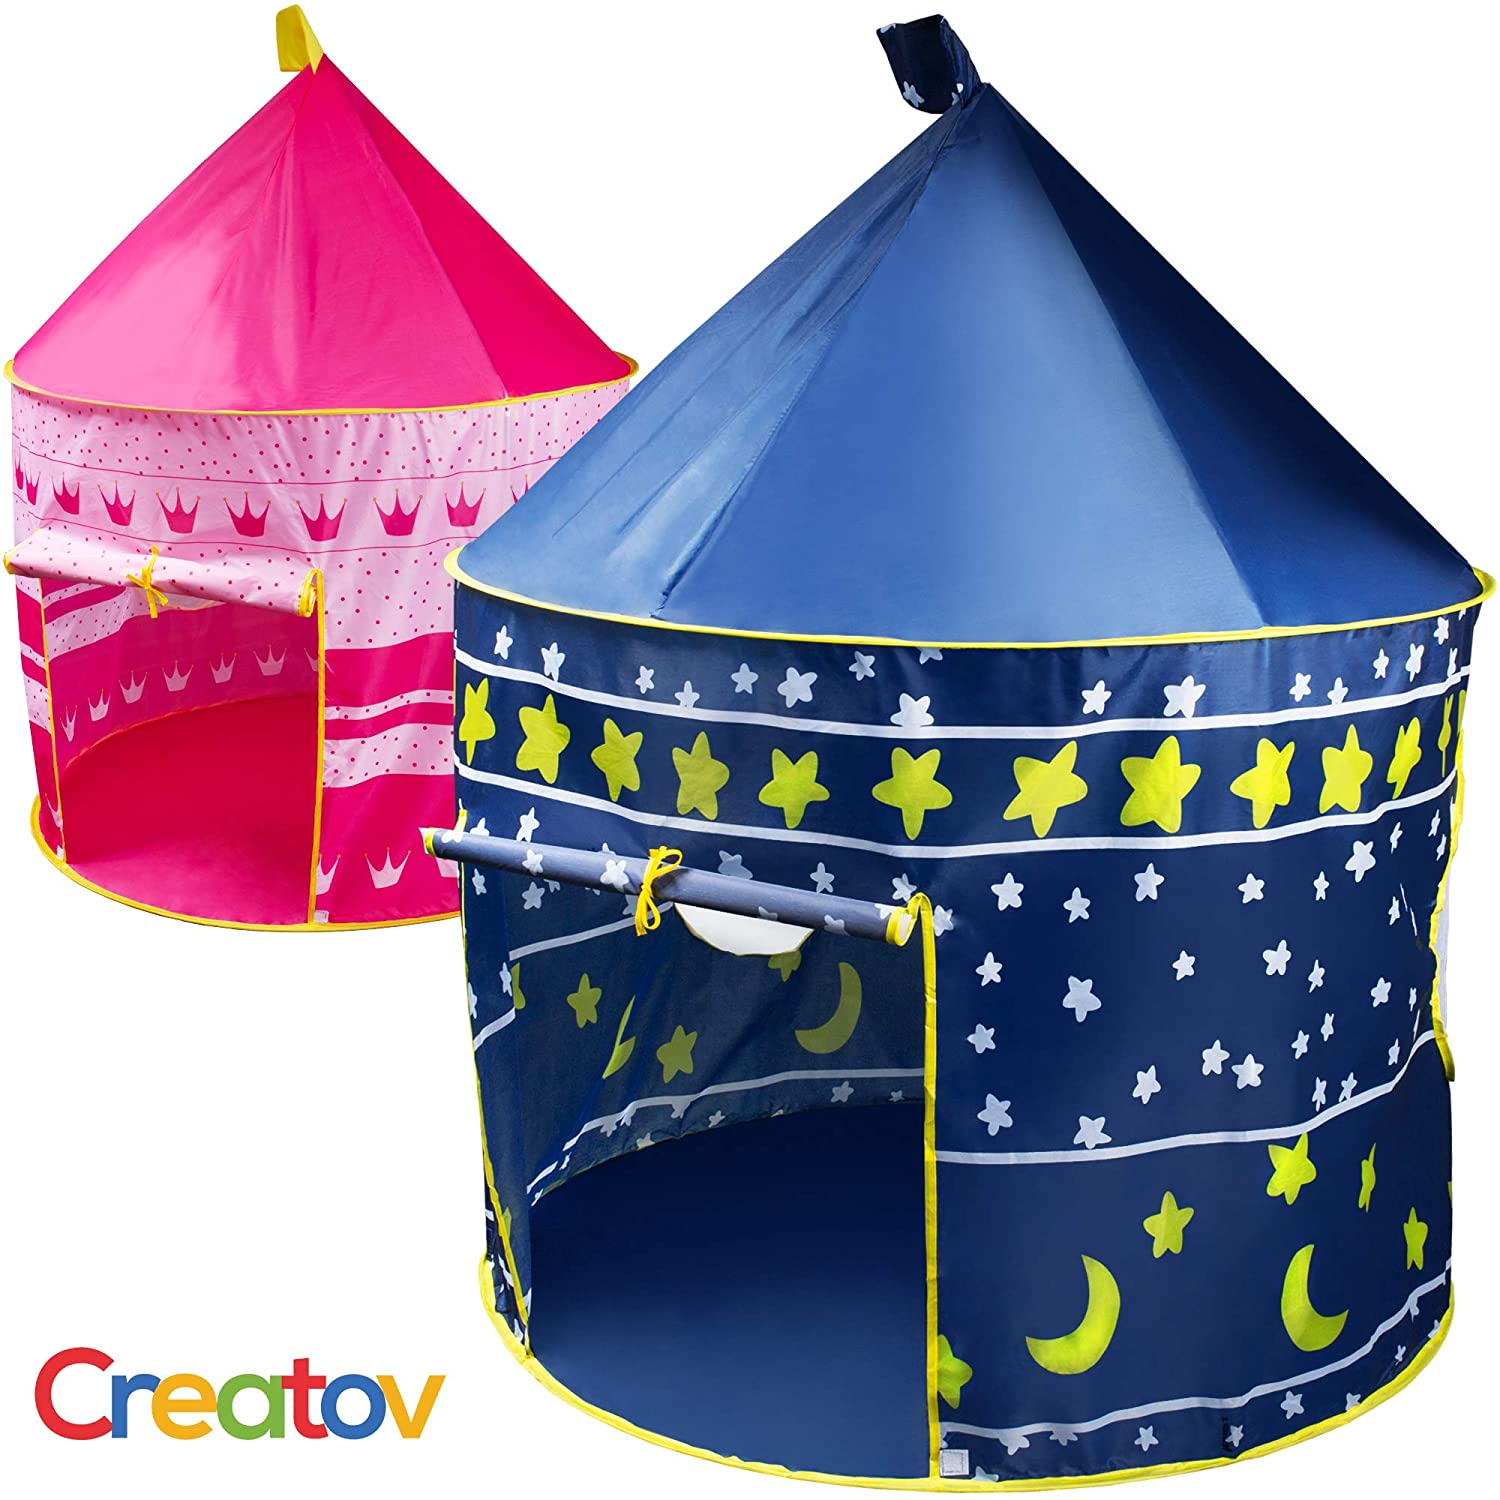 Kids Tent Toy Prince Playhouse - Toddler Play House Blue Castle for Kid Children Boys Girls Baby for Indoor & Outdoor Toys Foldable Playhouses Tents with Carry Case Great Birthday Gift Idea by Creatov